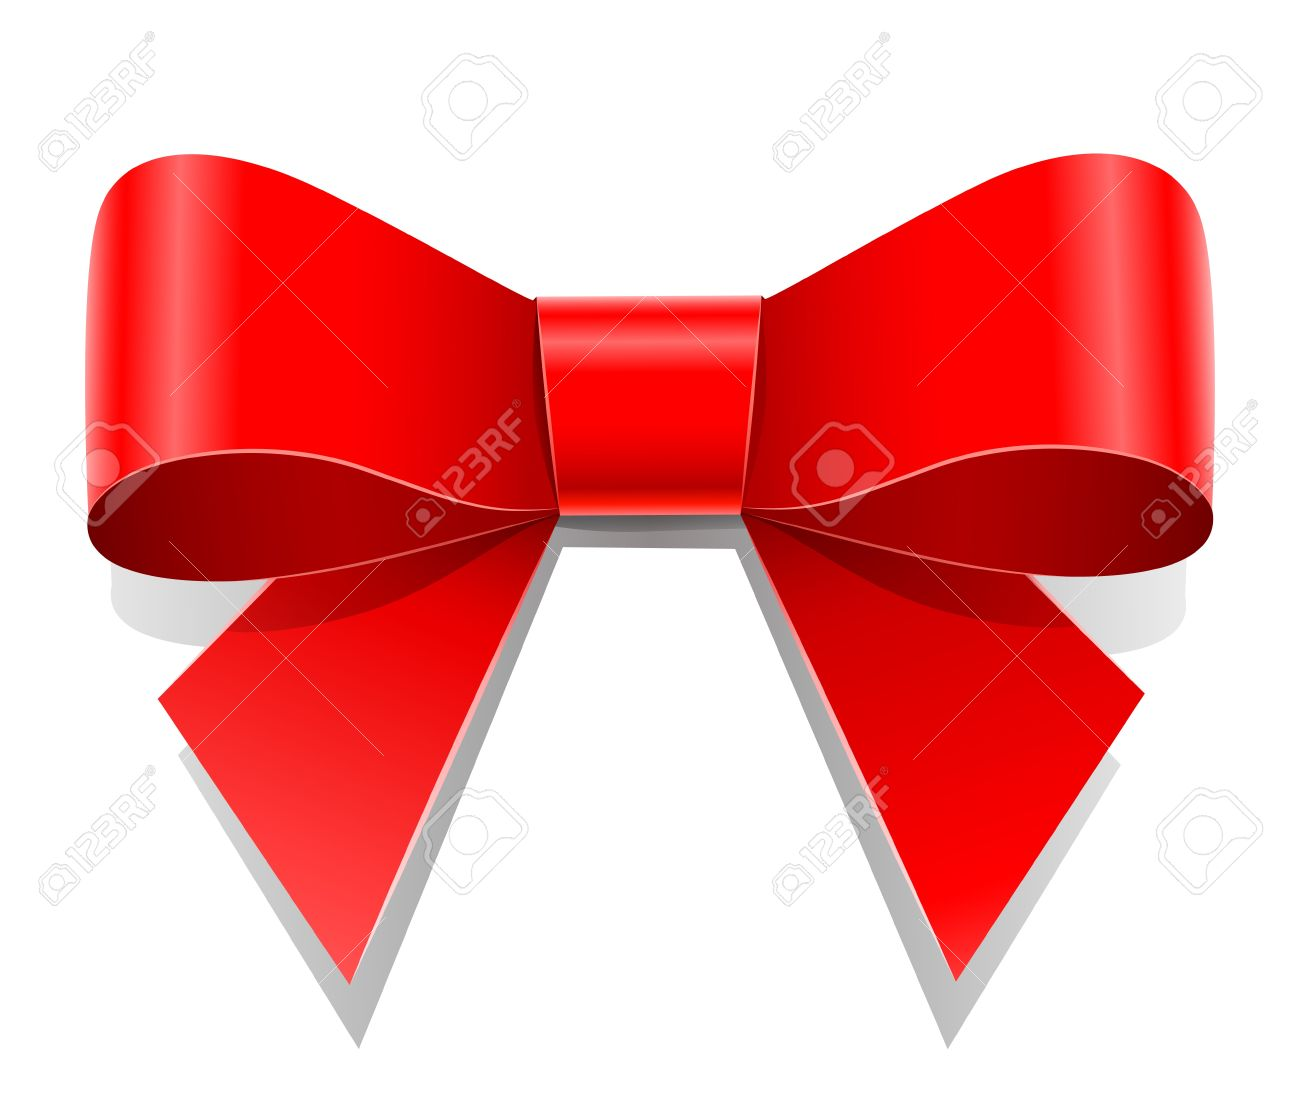 1300x1115 Red Bow Vector Illustration Isolated On White Background